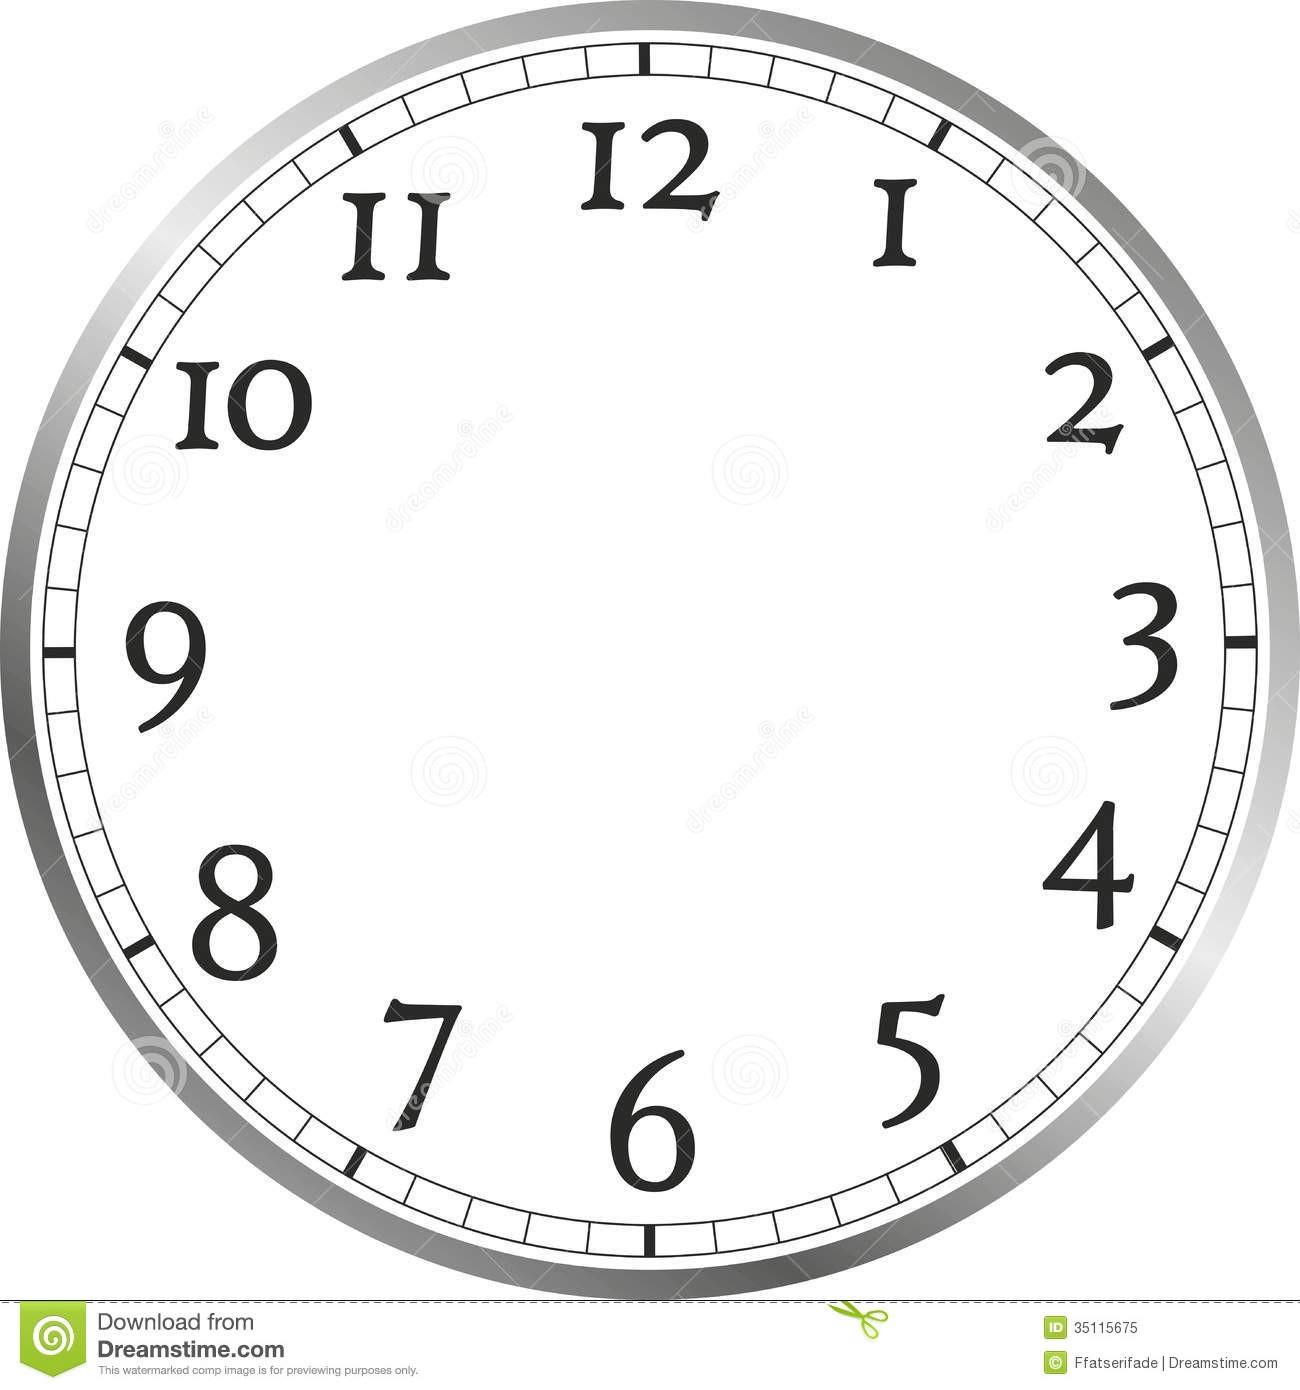 Watch face clip art.